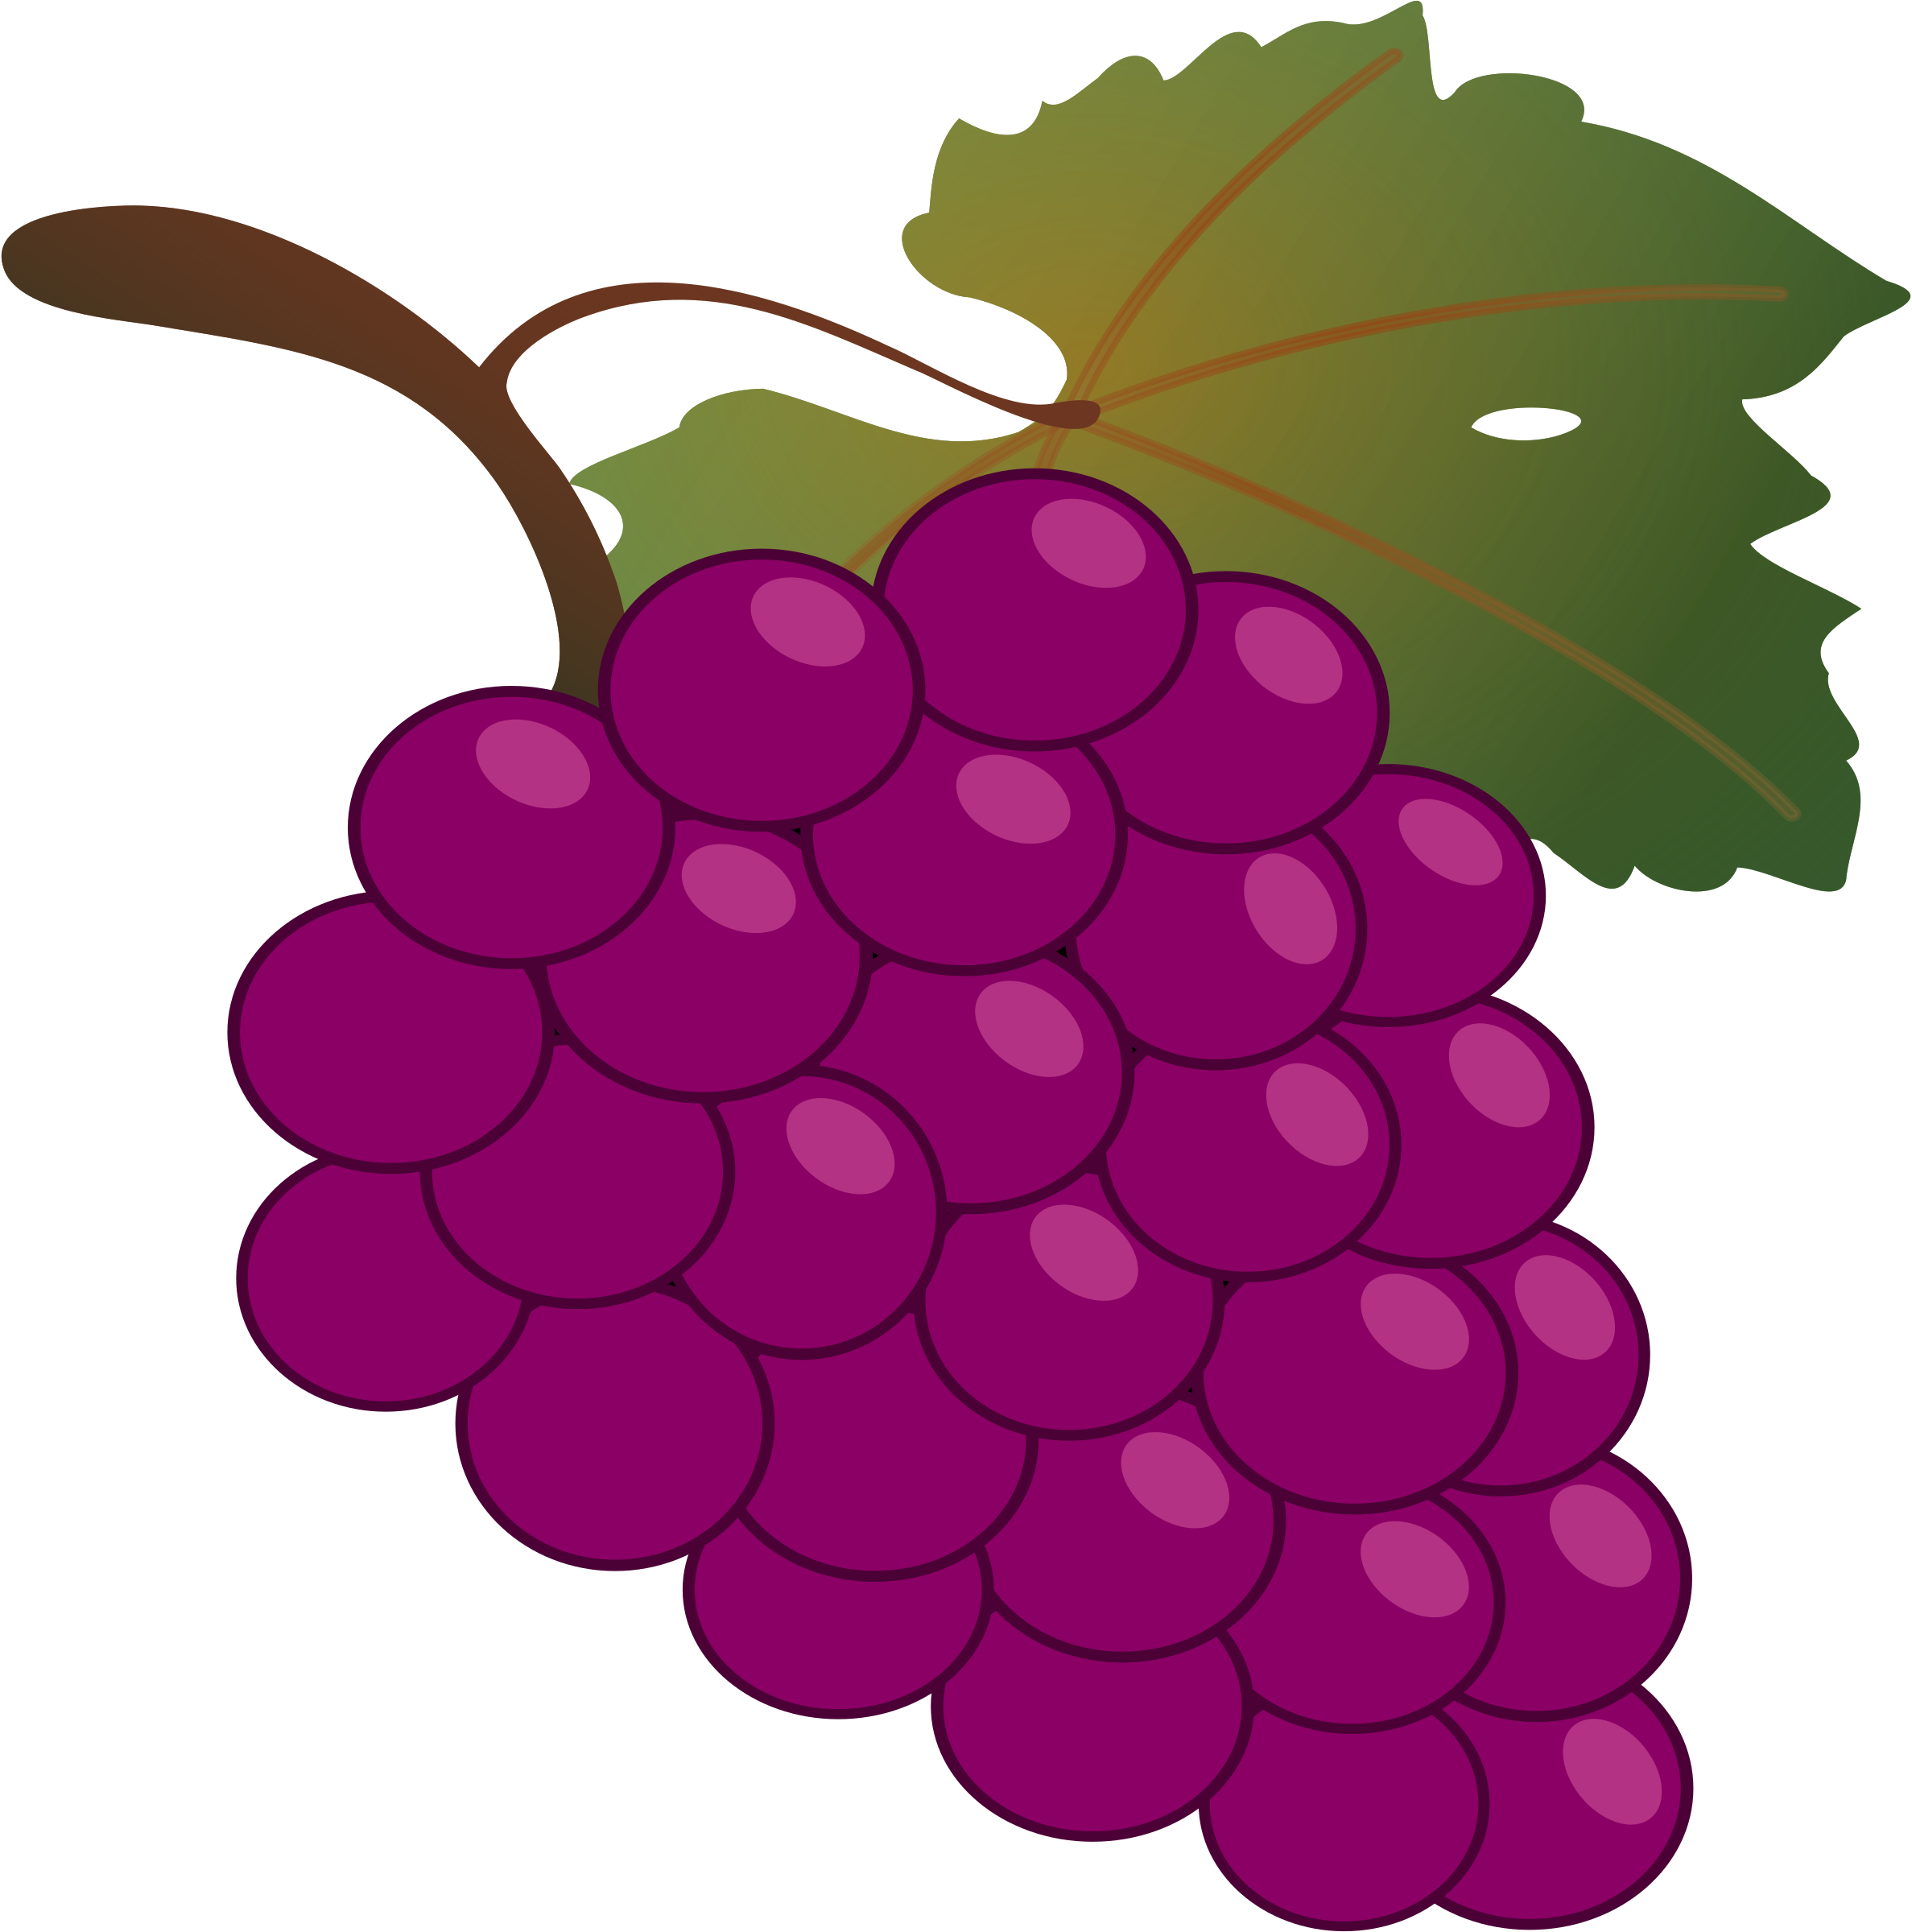 grape by jean_victor_balin